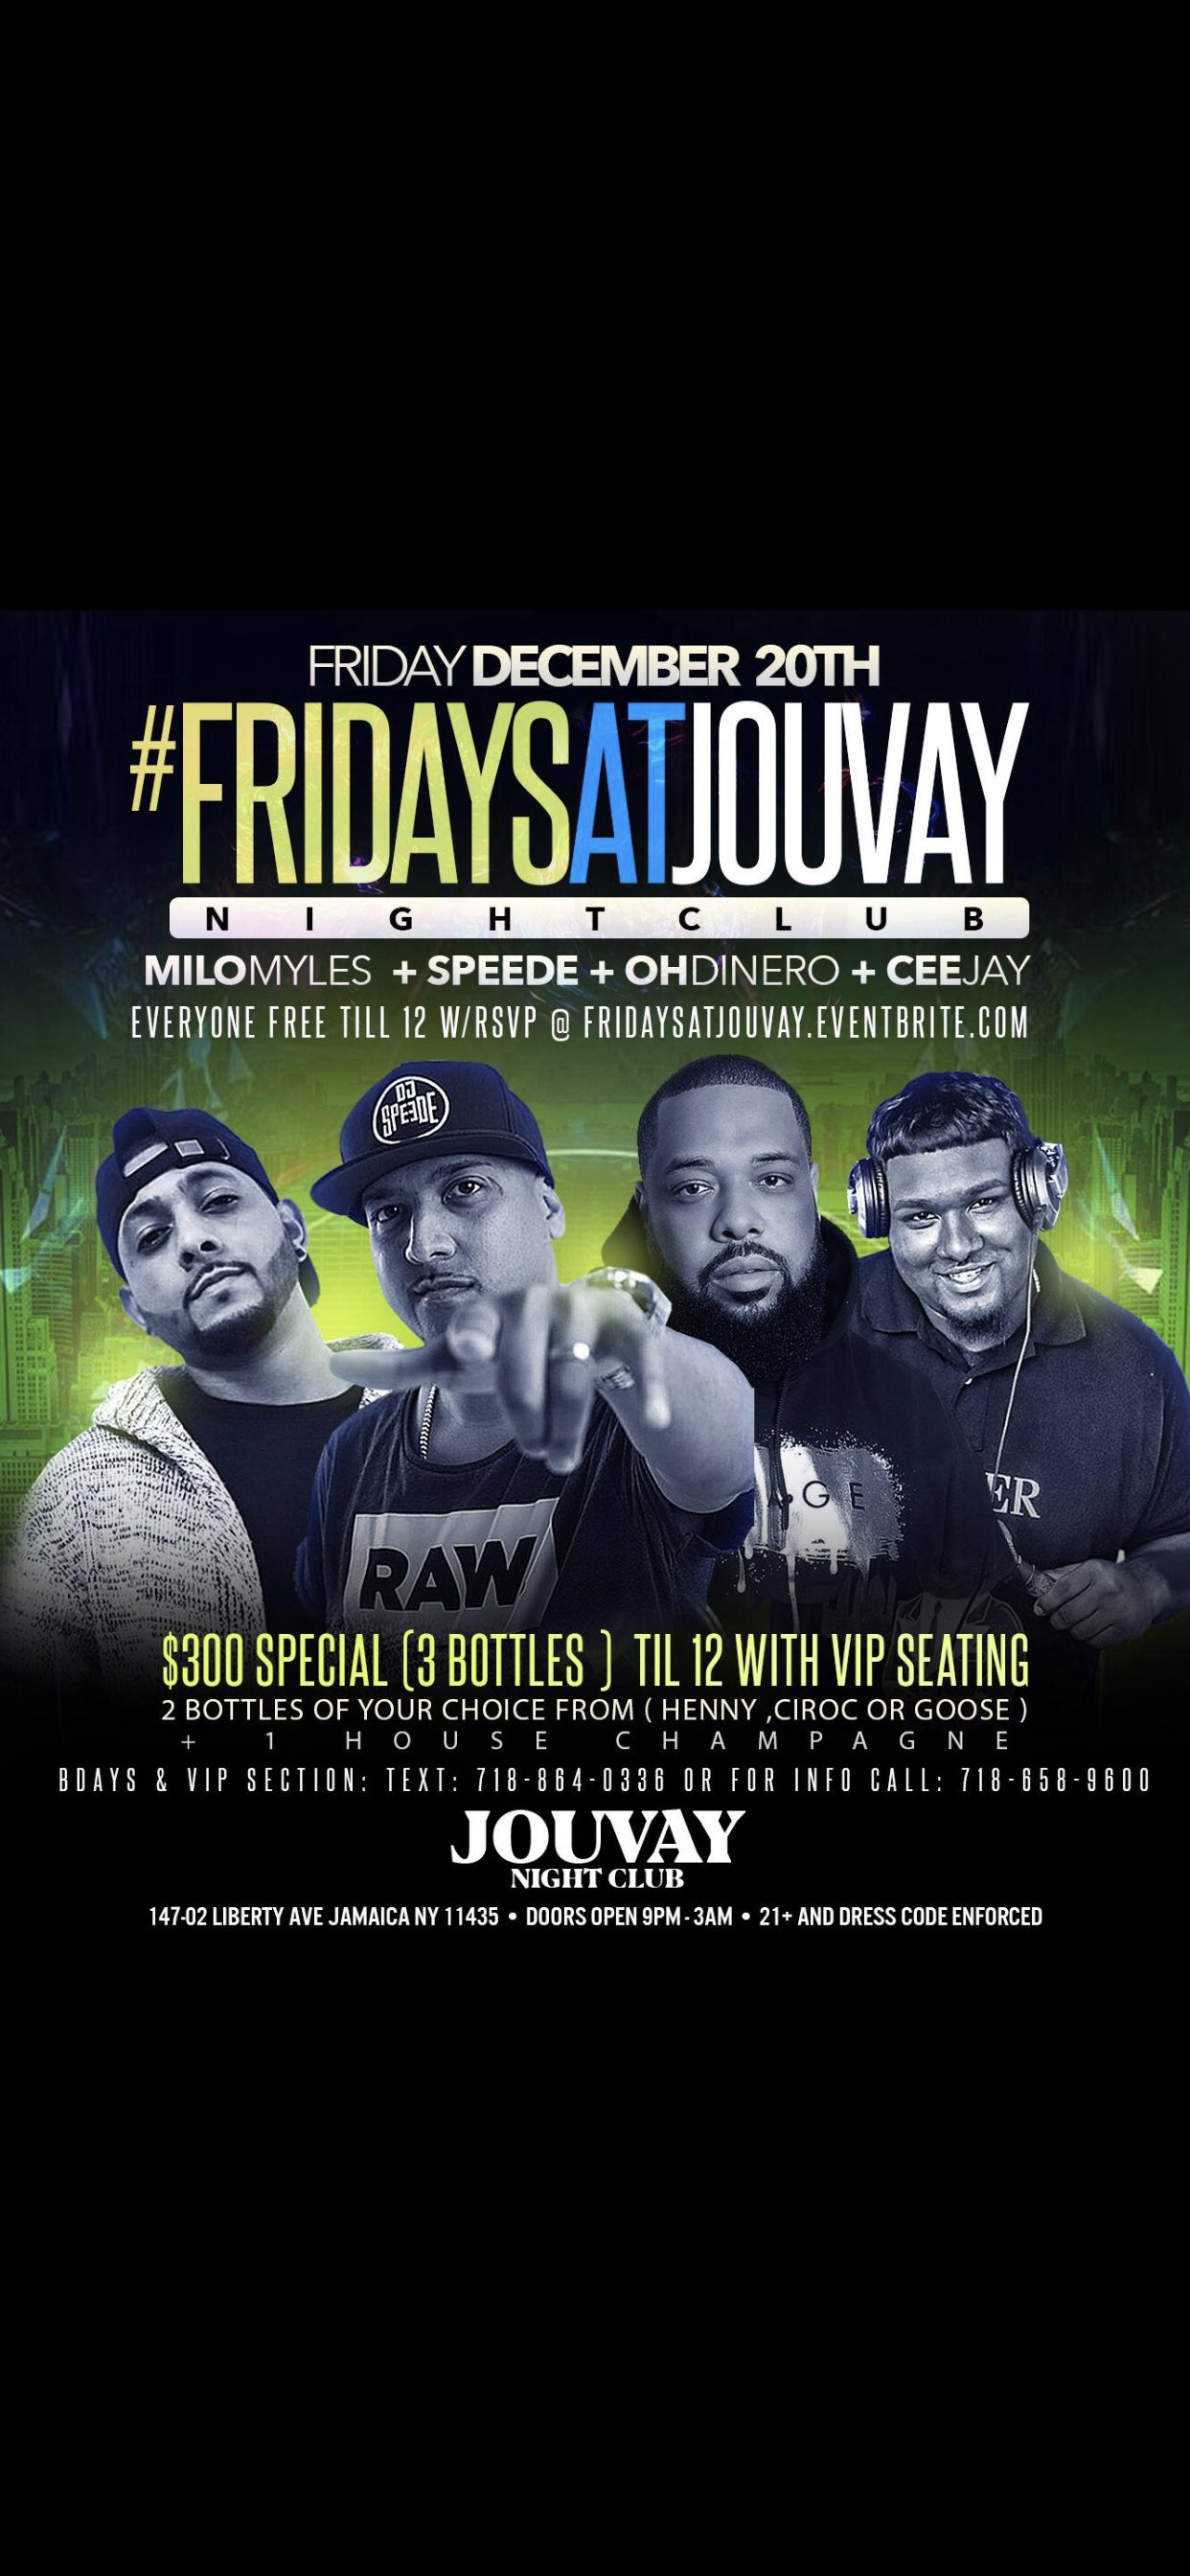 FUSION FRIDAYS AT JOUVAY HOSTED BY TEAMINNO